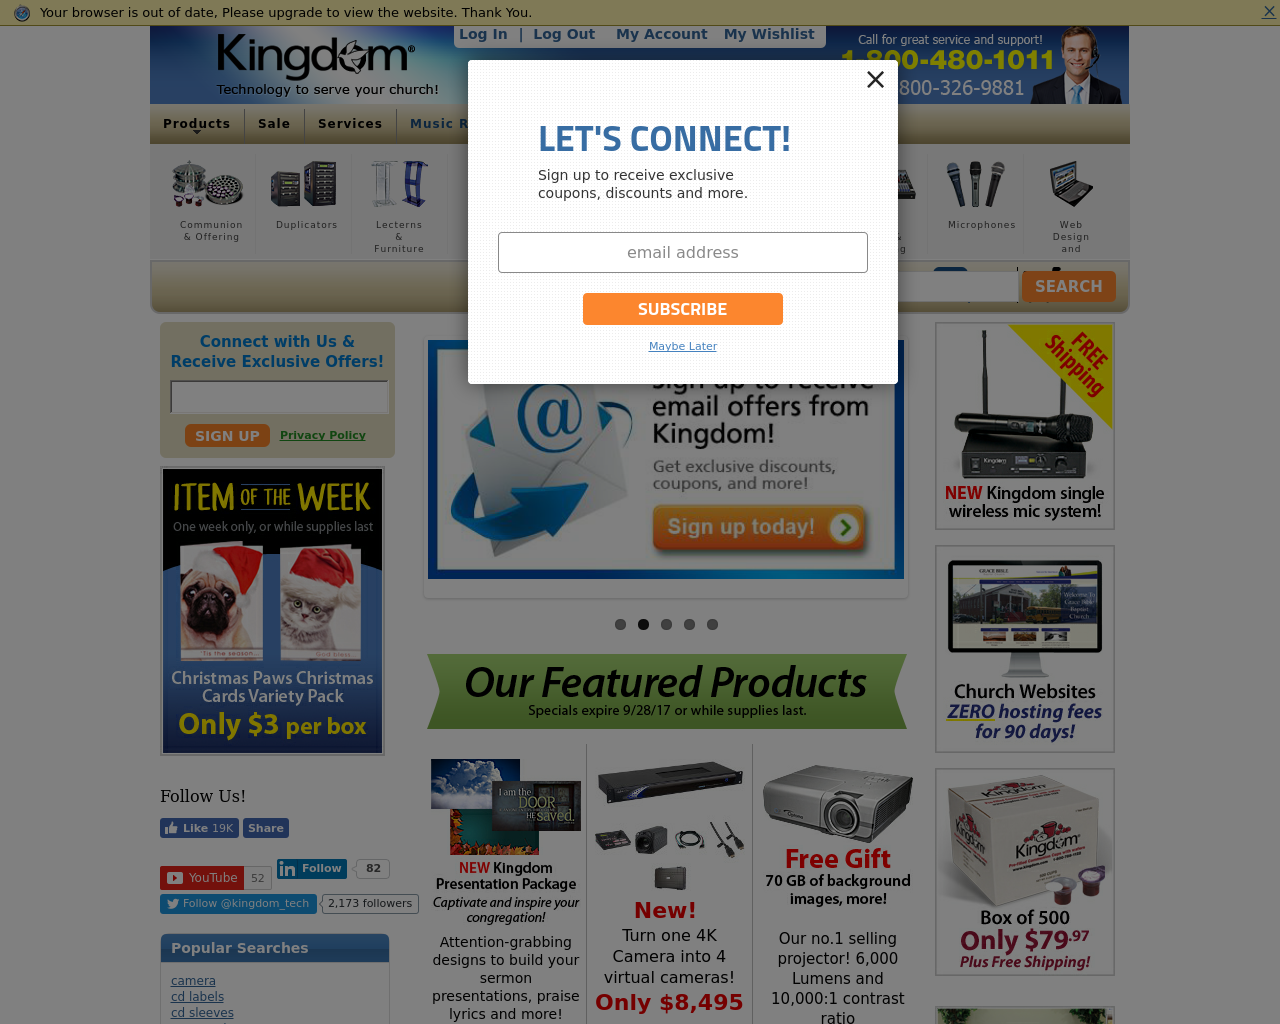 The-Kingdom-Store-Advertising-Reviews-Pricing